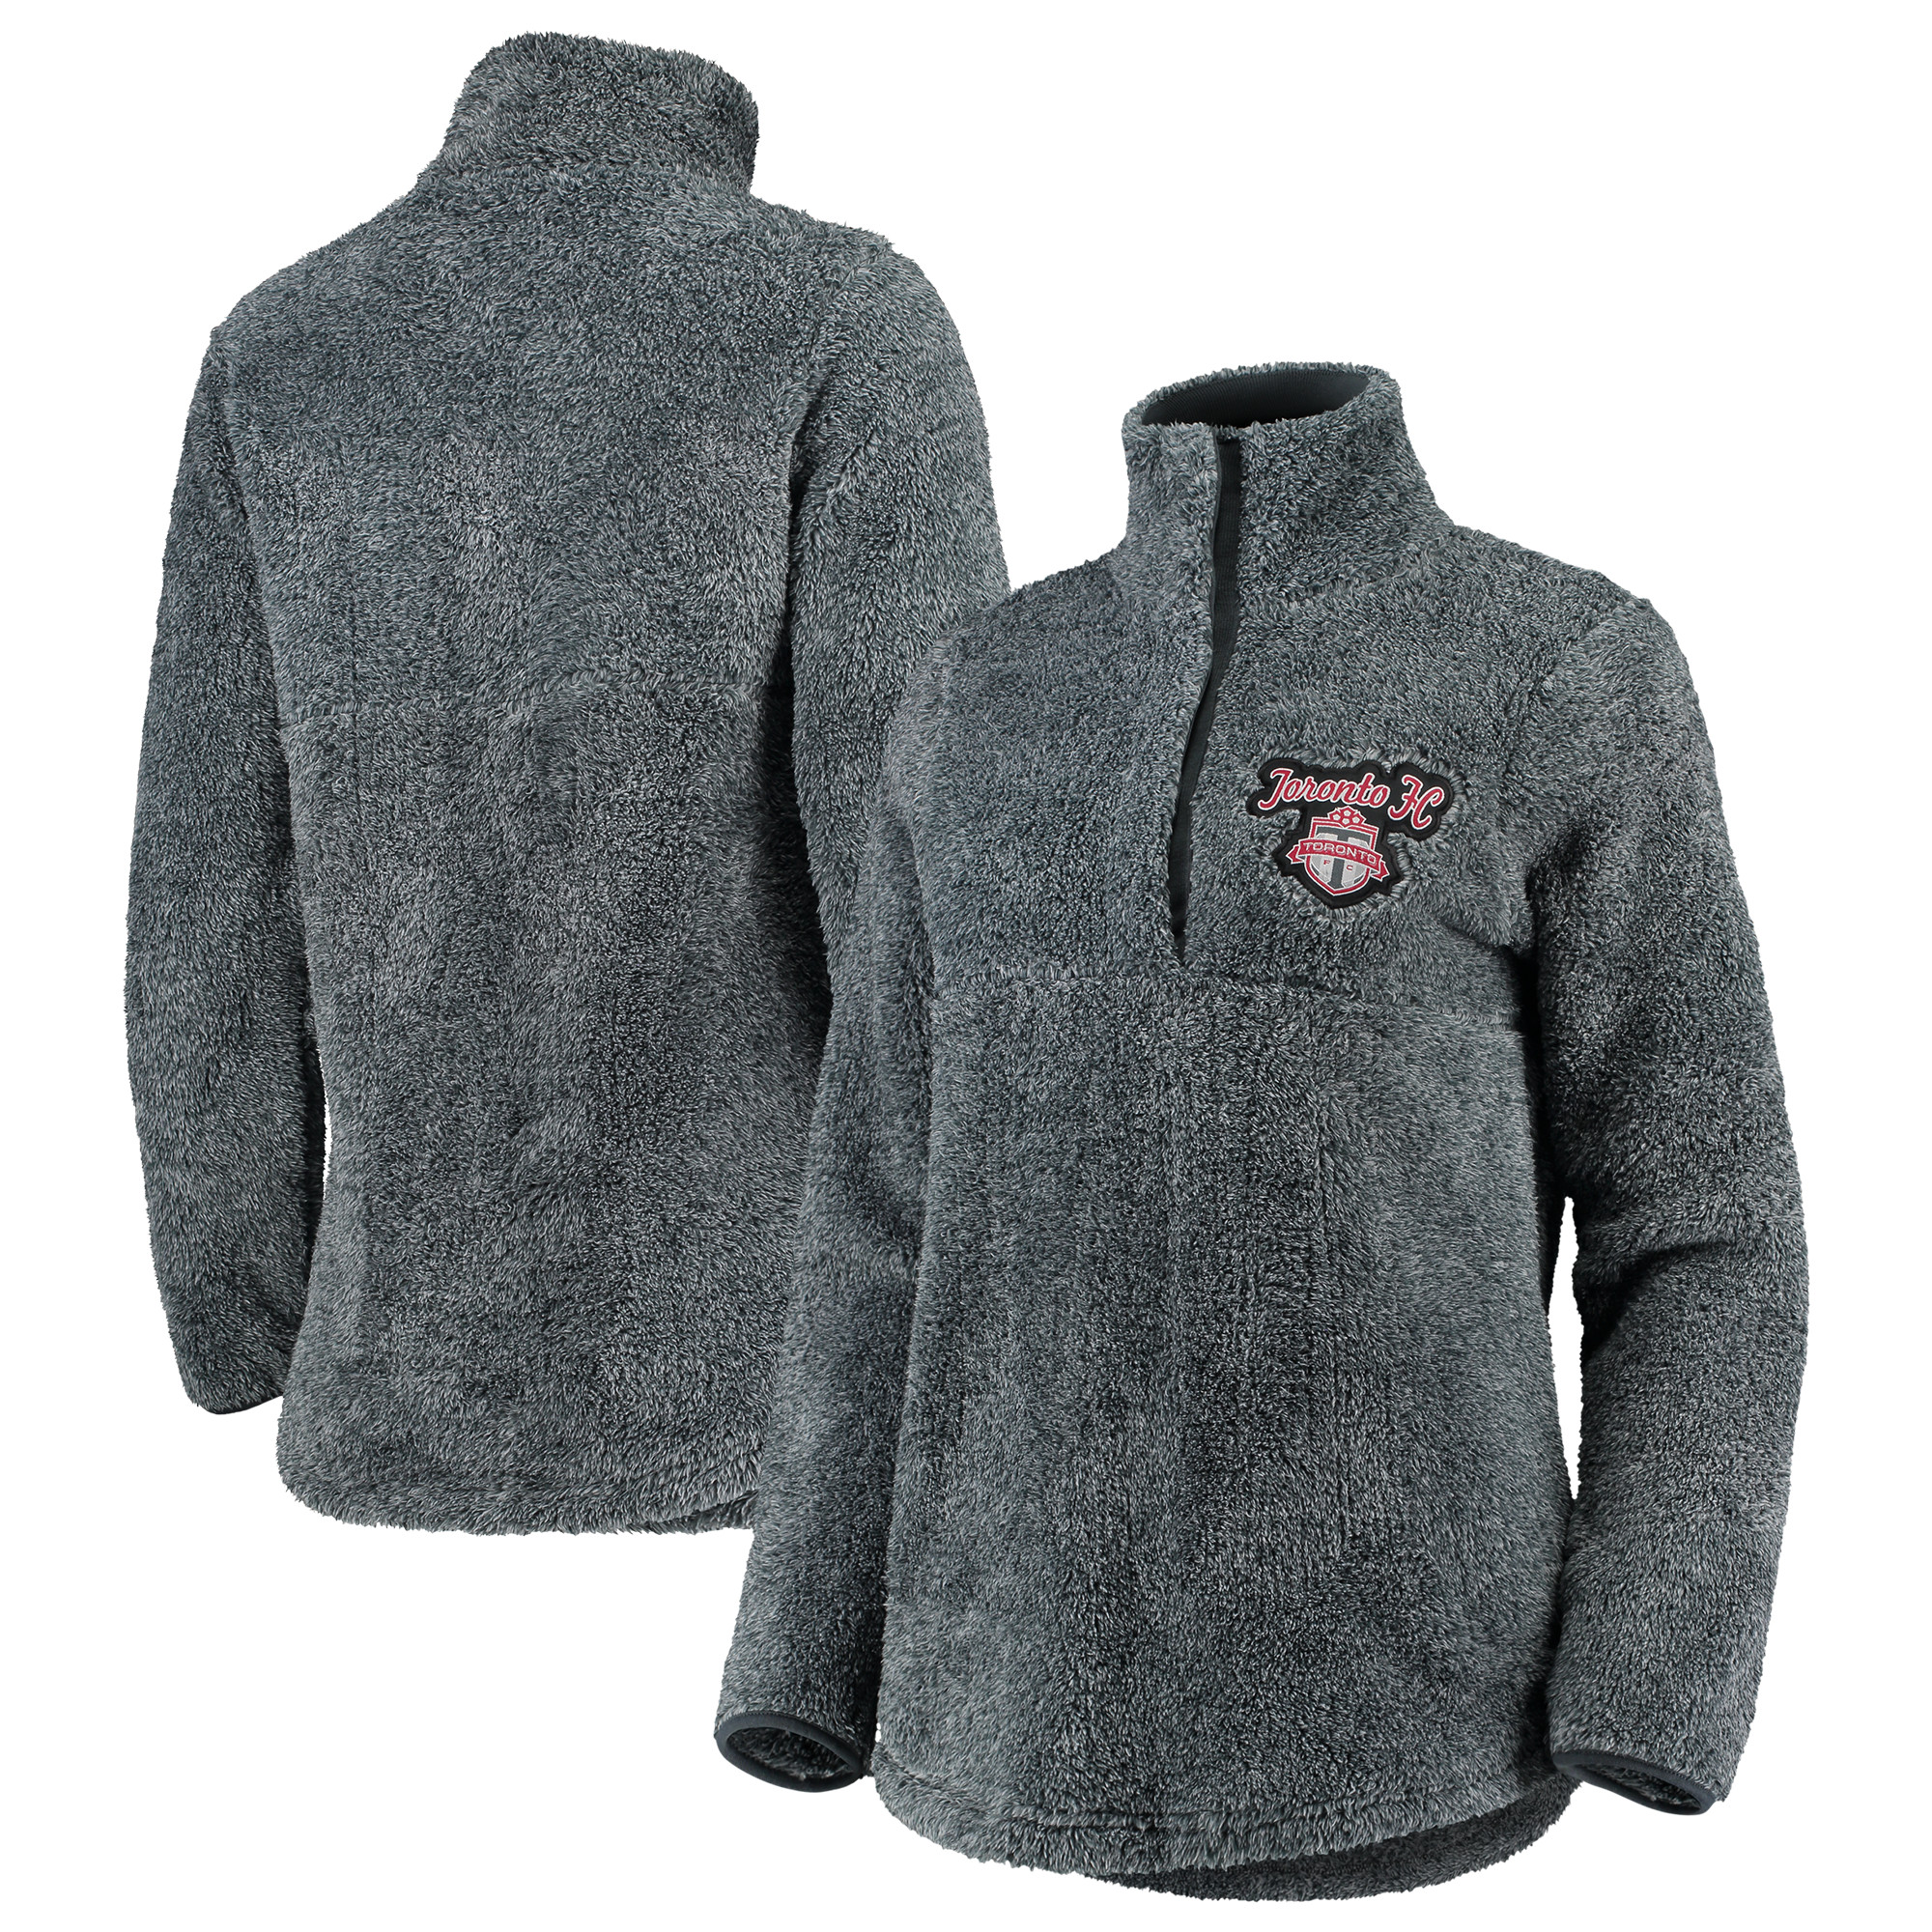 Toronto FC Concepts Sport Women's Trifecta Fluffy Half-Zip Pullover Jacket - Charcoal